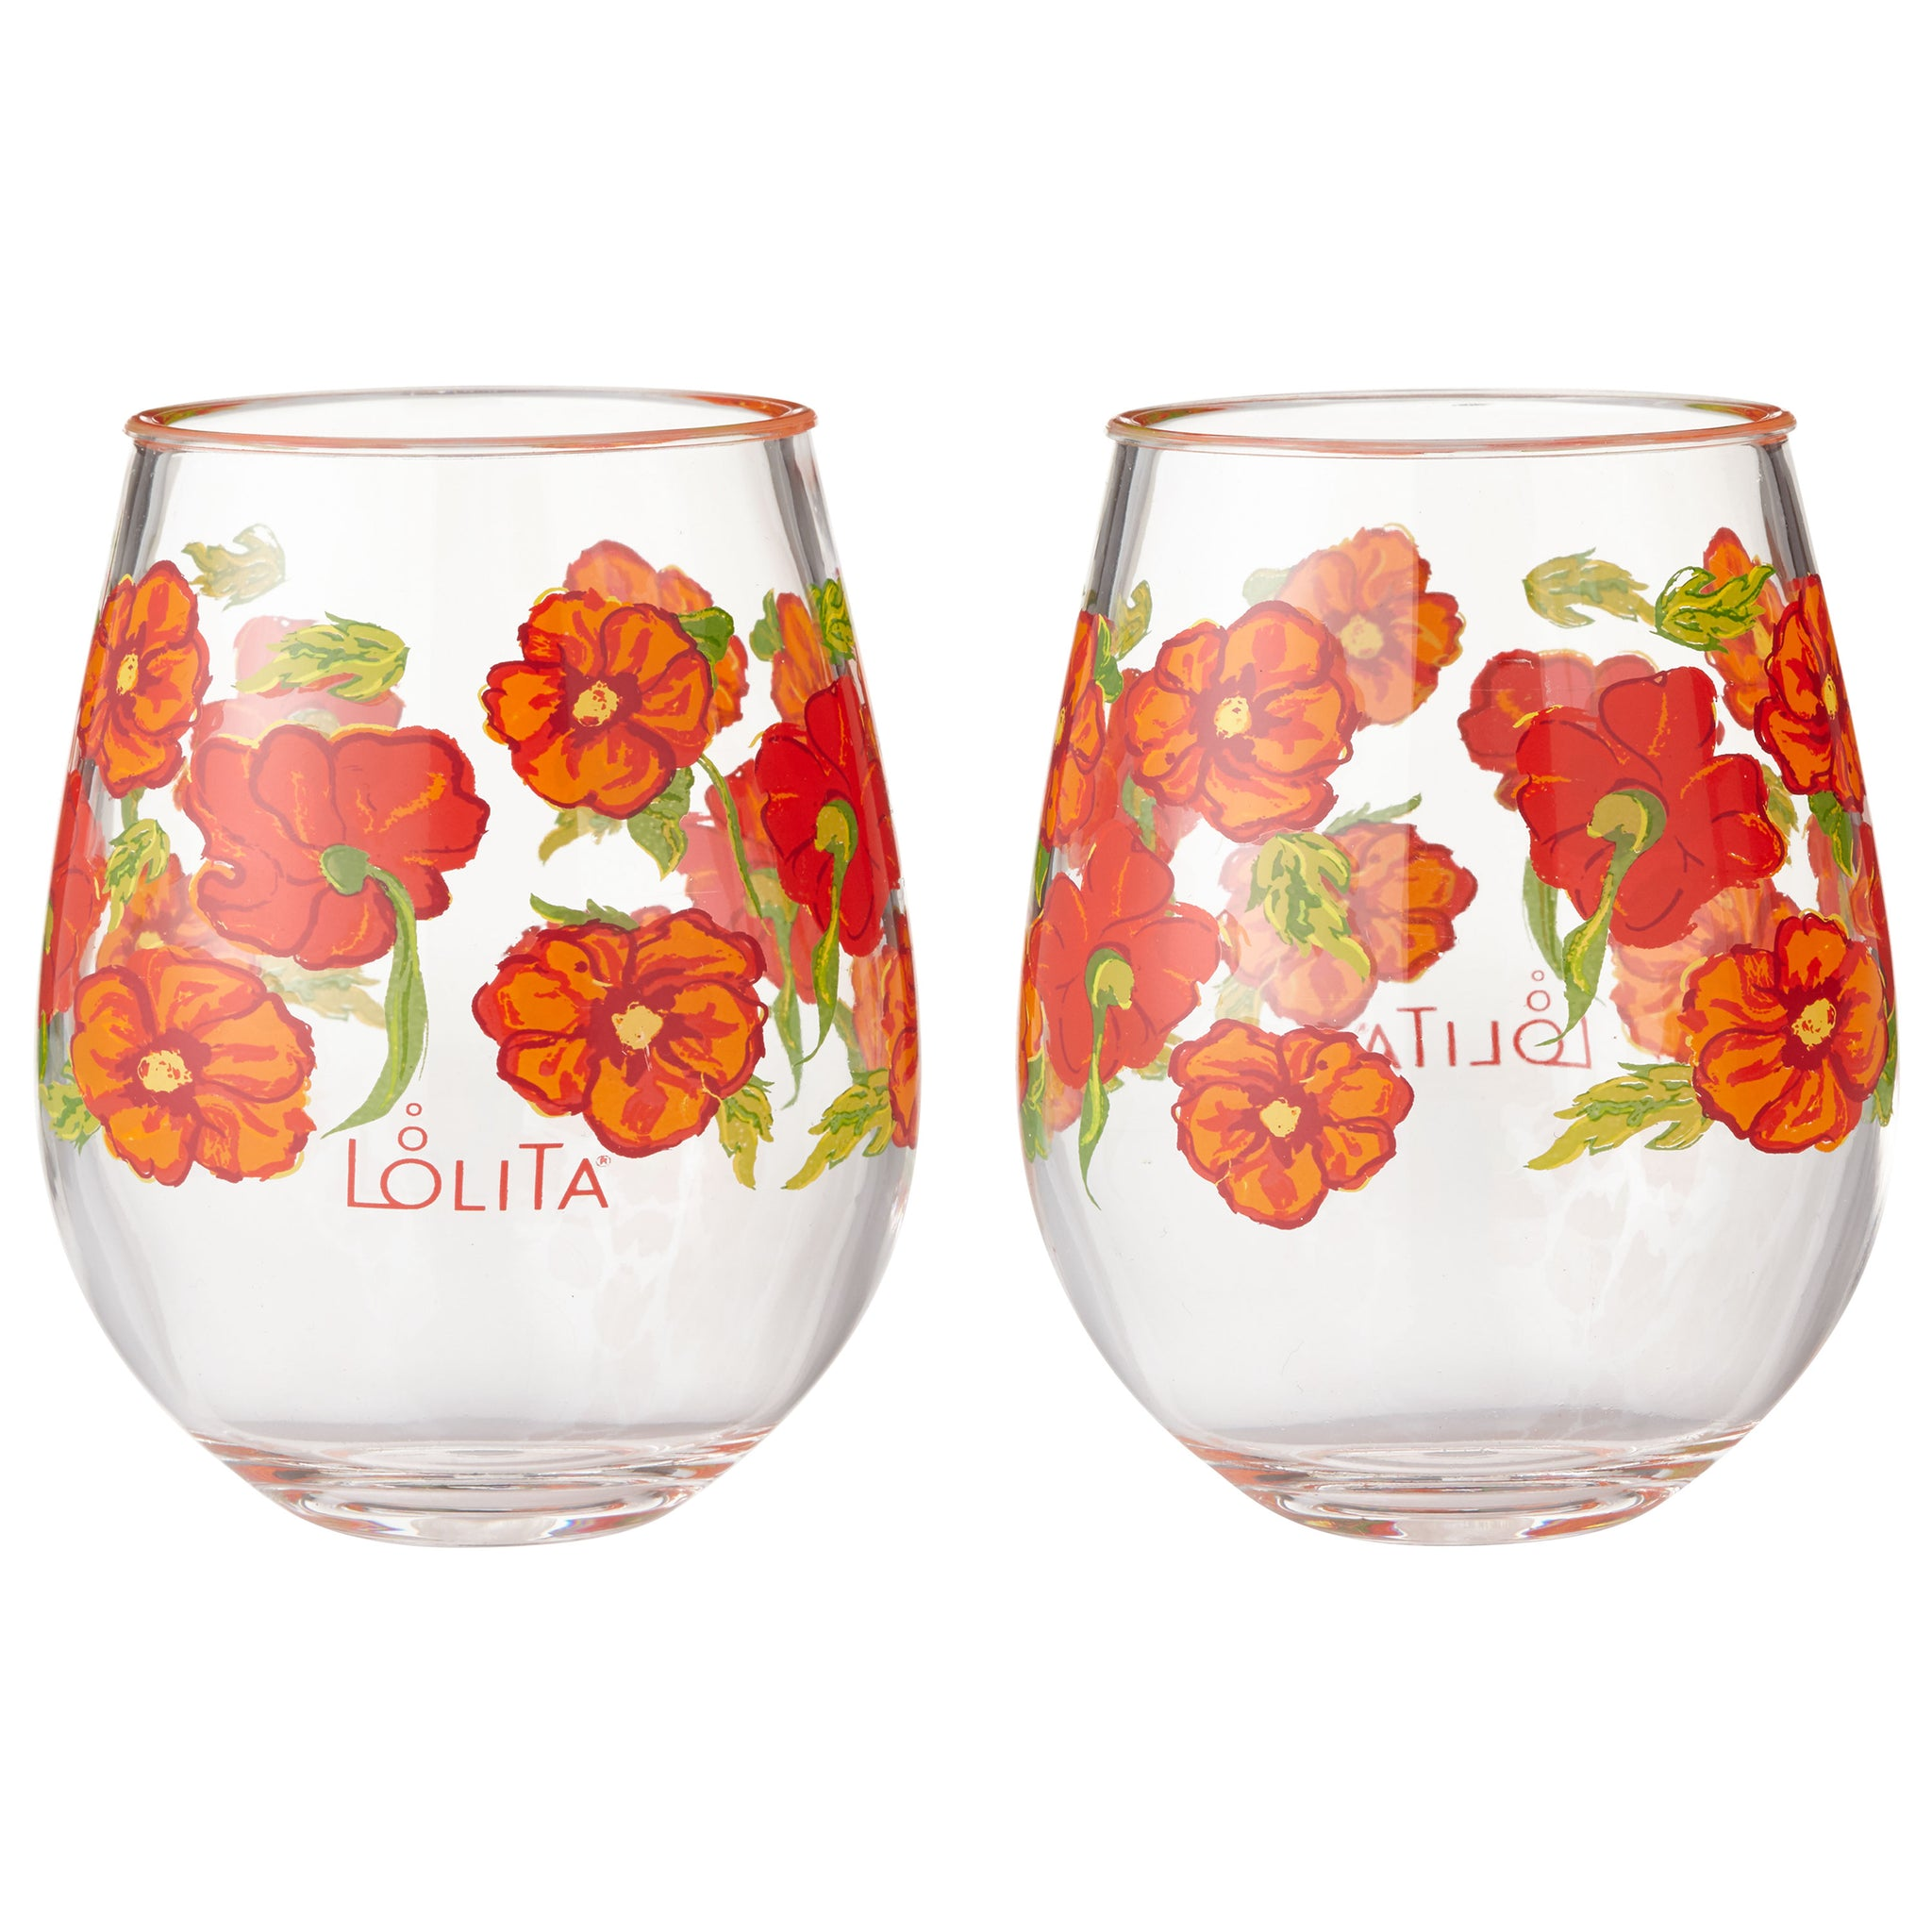 1d5130cbb67 Best of the Bunch Acrylic Stemless Wine Glasses, Set of 2, 15 oz.